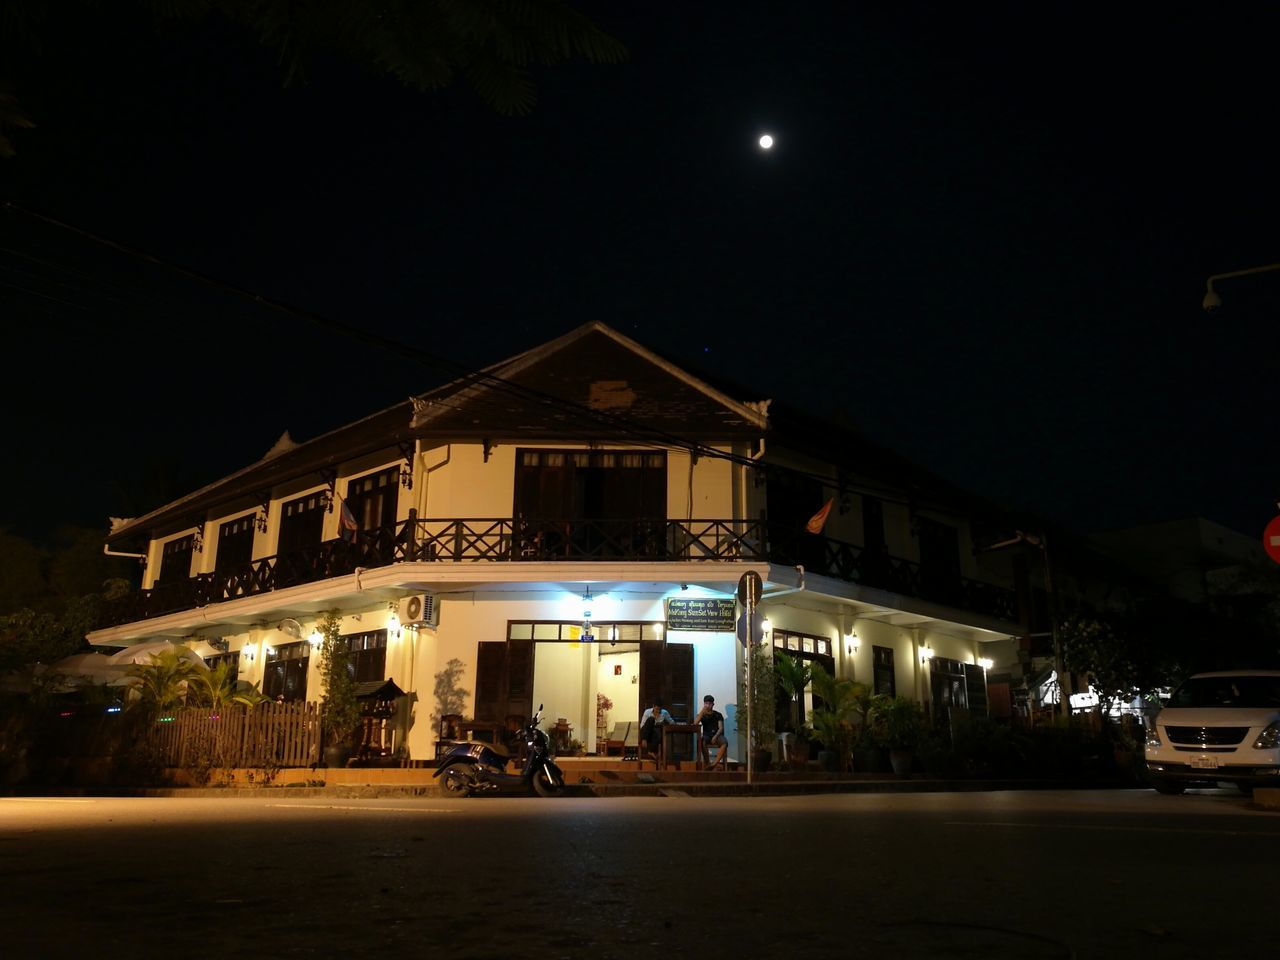 Night Illuminated Building Exterior Built Structure Travel Architecture Building Lao Culture Street Photography EyeEmNewHere Asien Asianstyle Laos Travel Residential Building Nightphotography Night Lights Night Photography Nightlife Home Sweet Home ♥ Home Night City Architecture